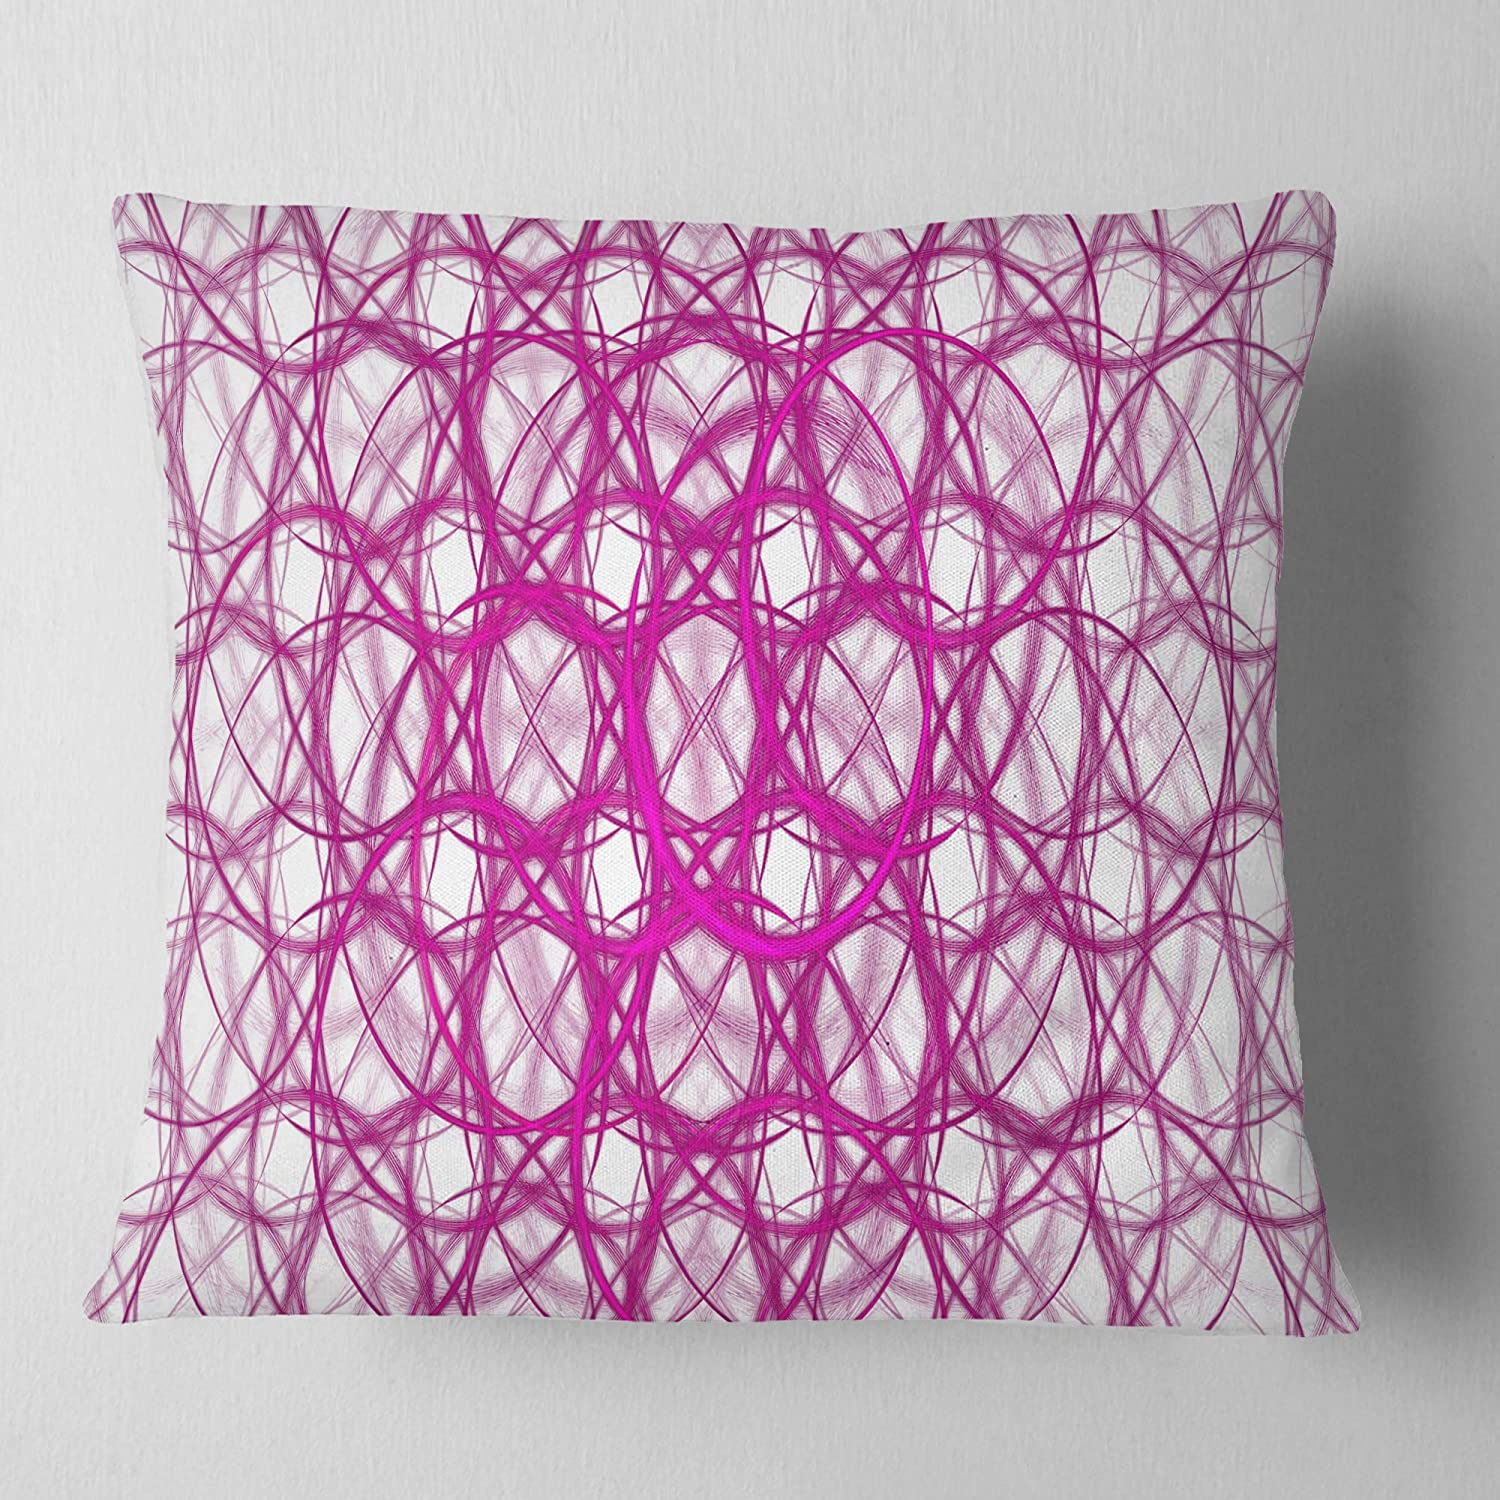 Designart CU16357-16-16 Pink Unusual Metal Grill Abstract Cushion Cover for Living Room Sofa Throw Pillow 16 in Insert Printed On Both Side x 16 in in